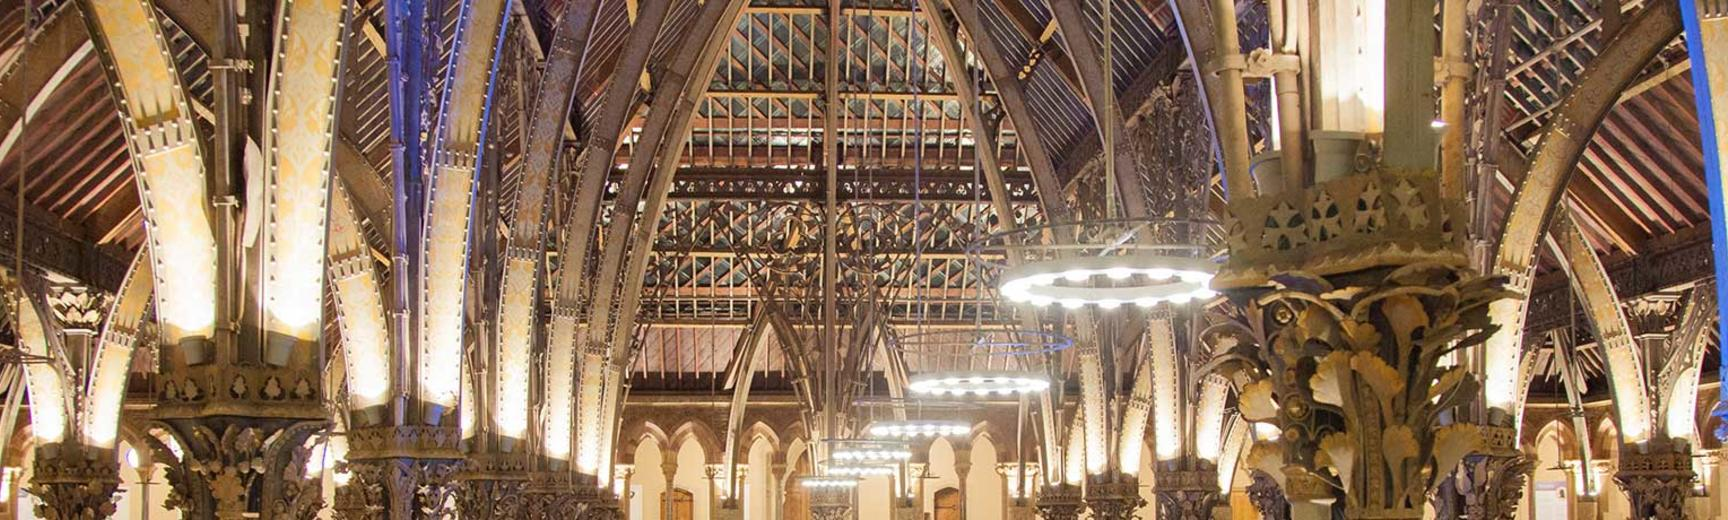 Interior view of roof with lighting, neo-gothic iron work, Museum of Natural History